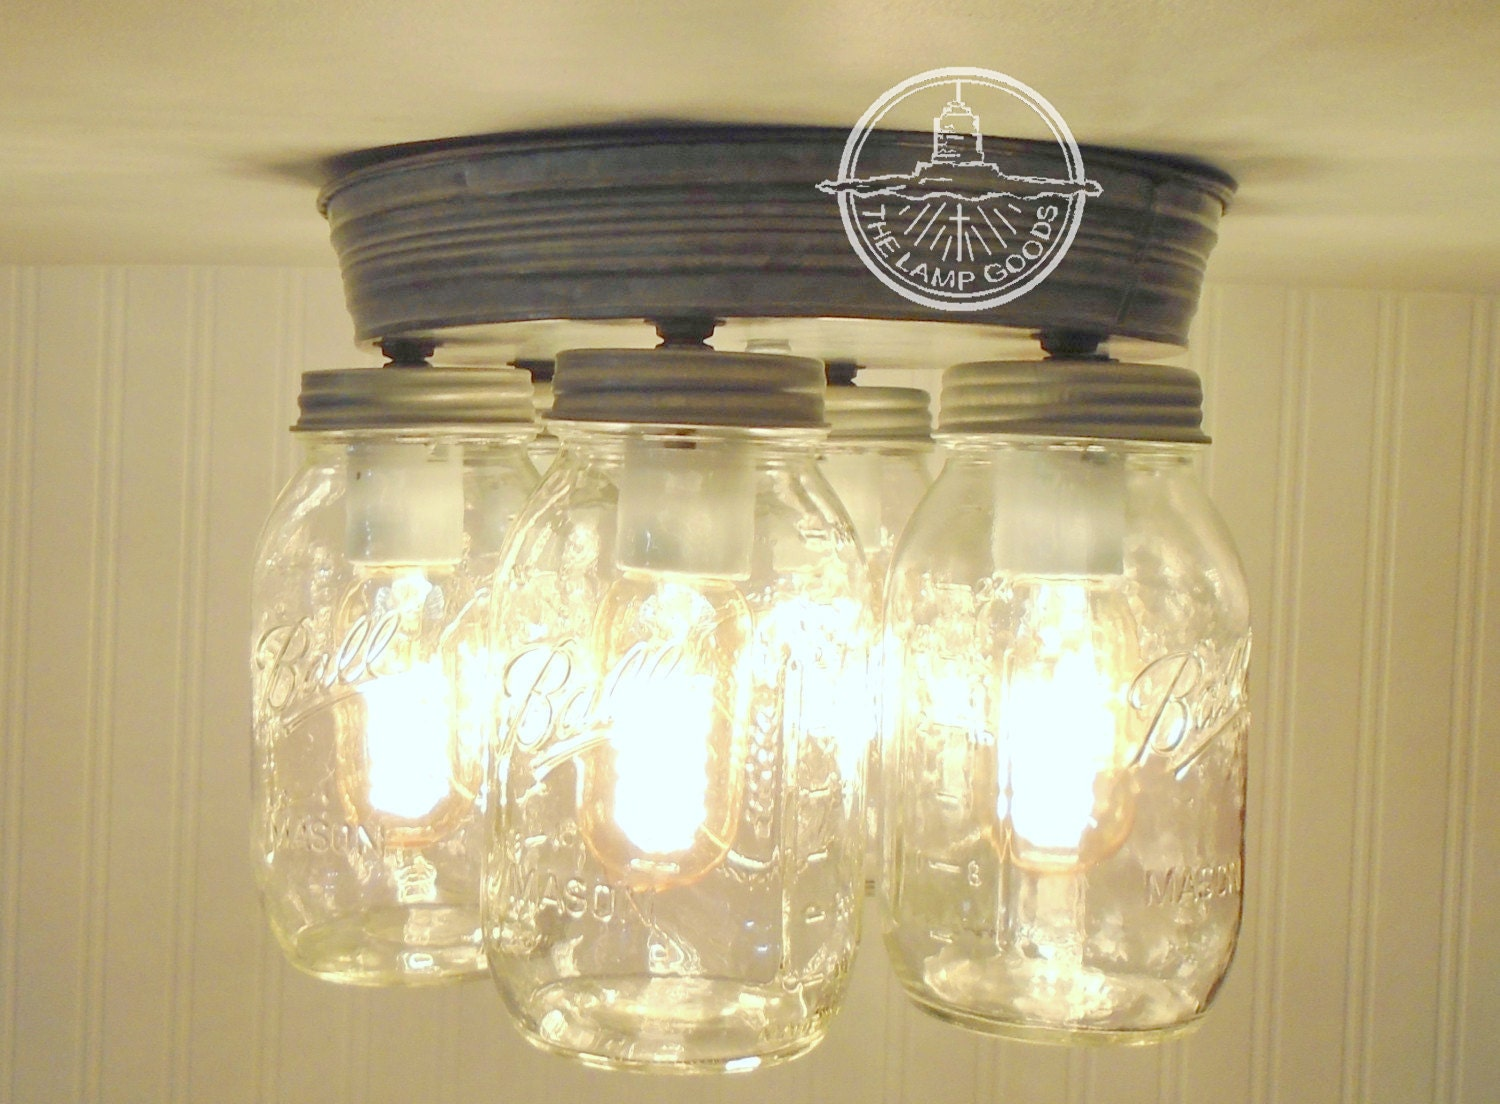 Rustic Mason Jar Ceiling Light Fixture New Quarts Flush Mount